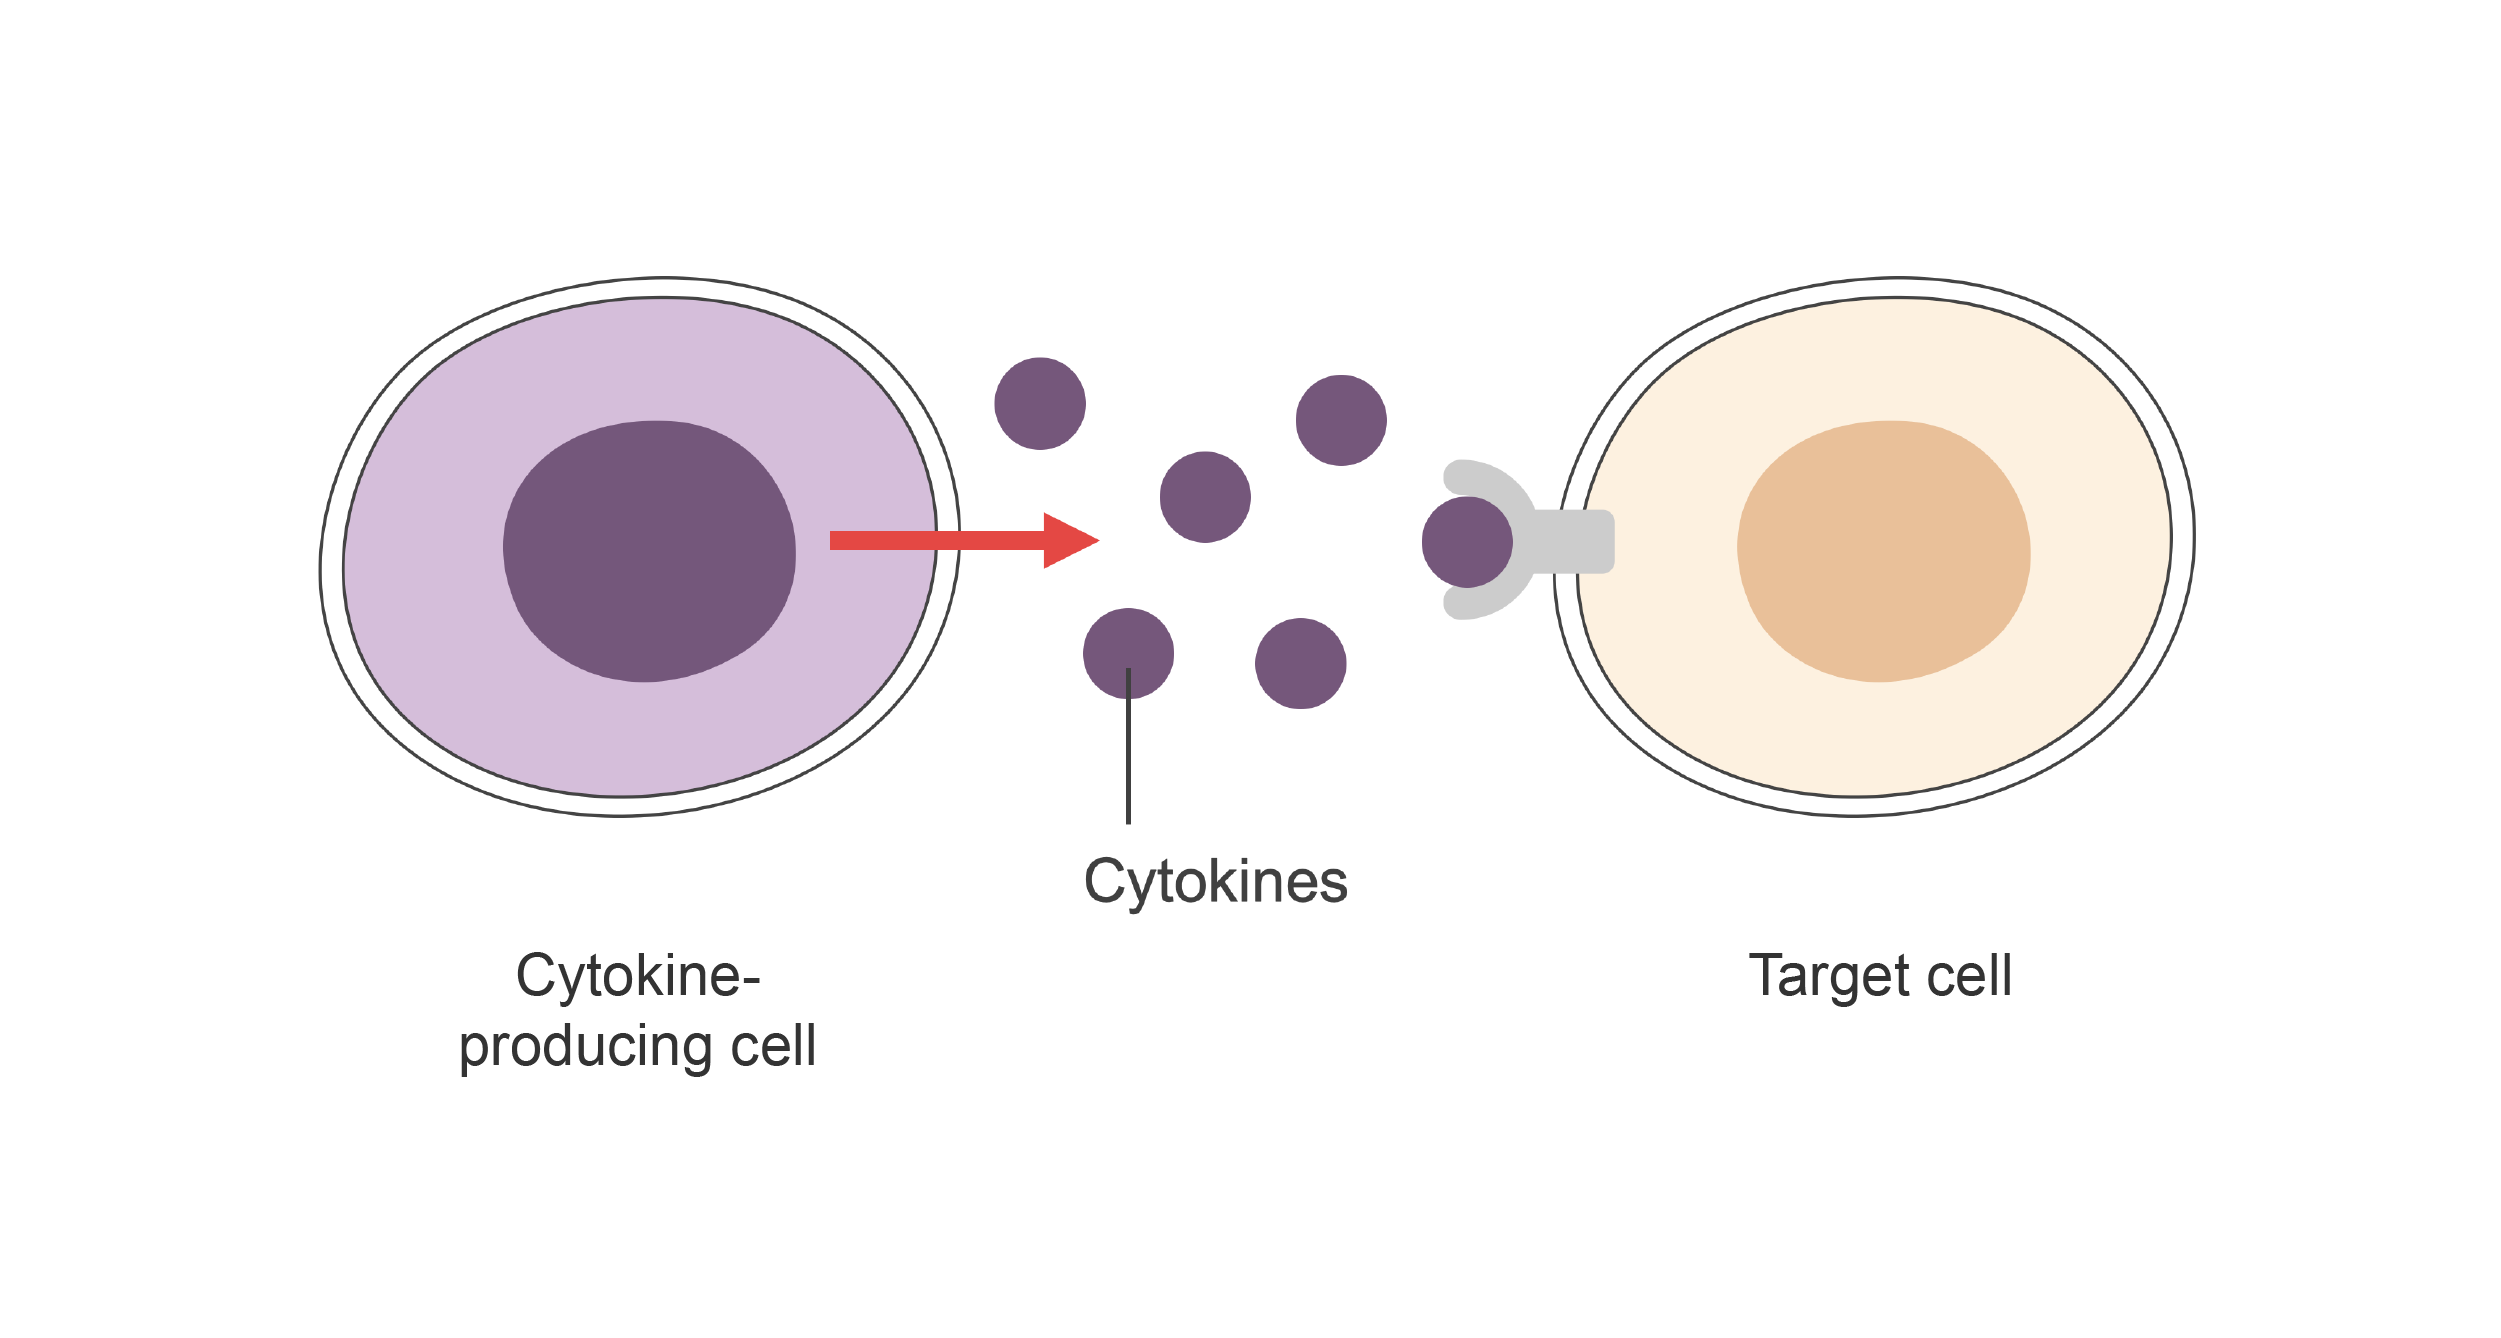 Cytokine-producing cell releasing cytokines to target cell. Illustration.